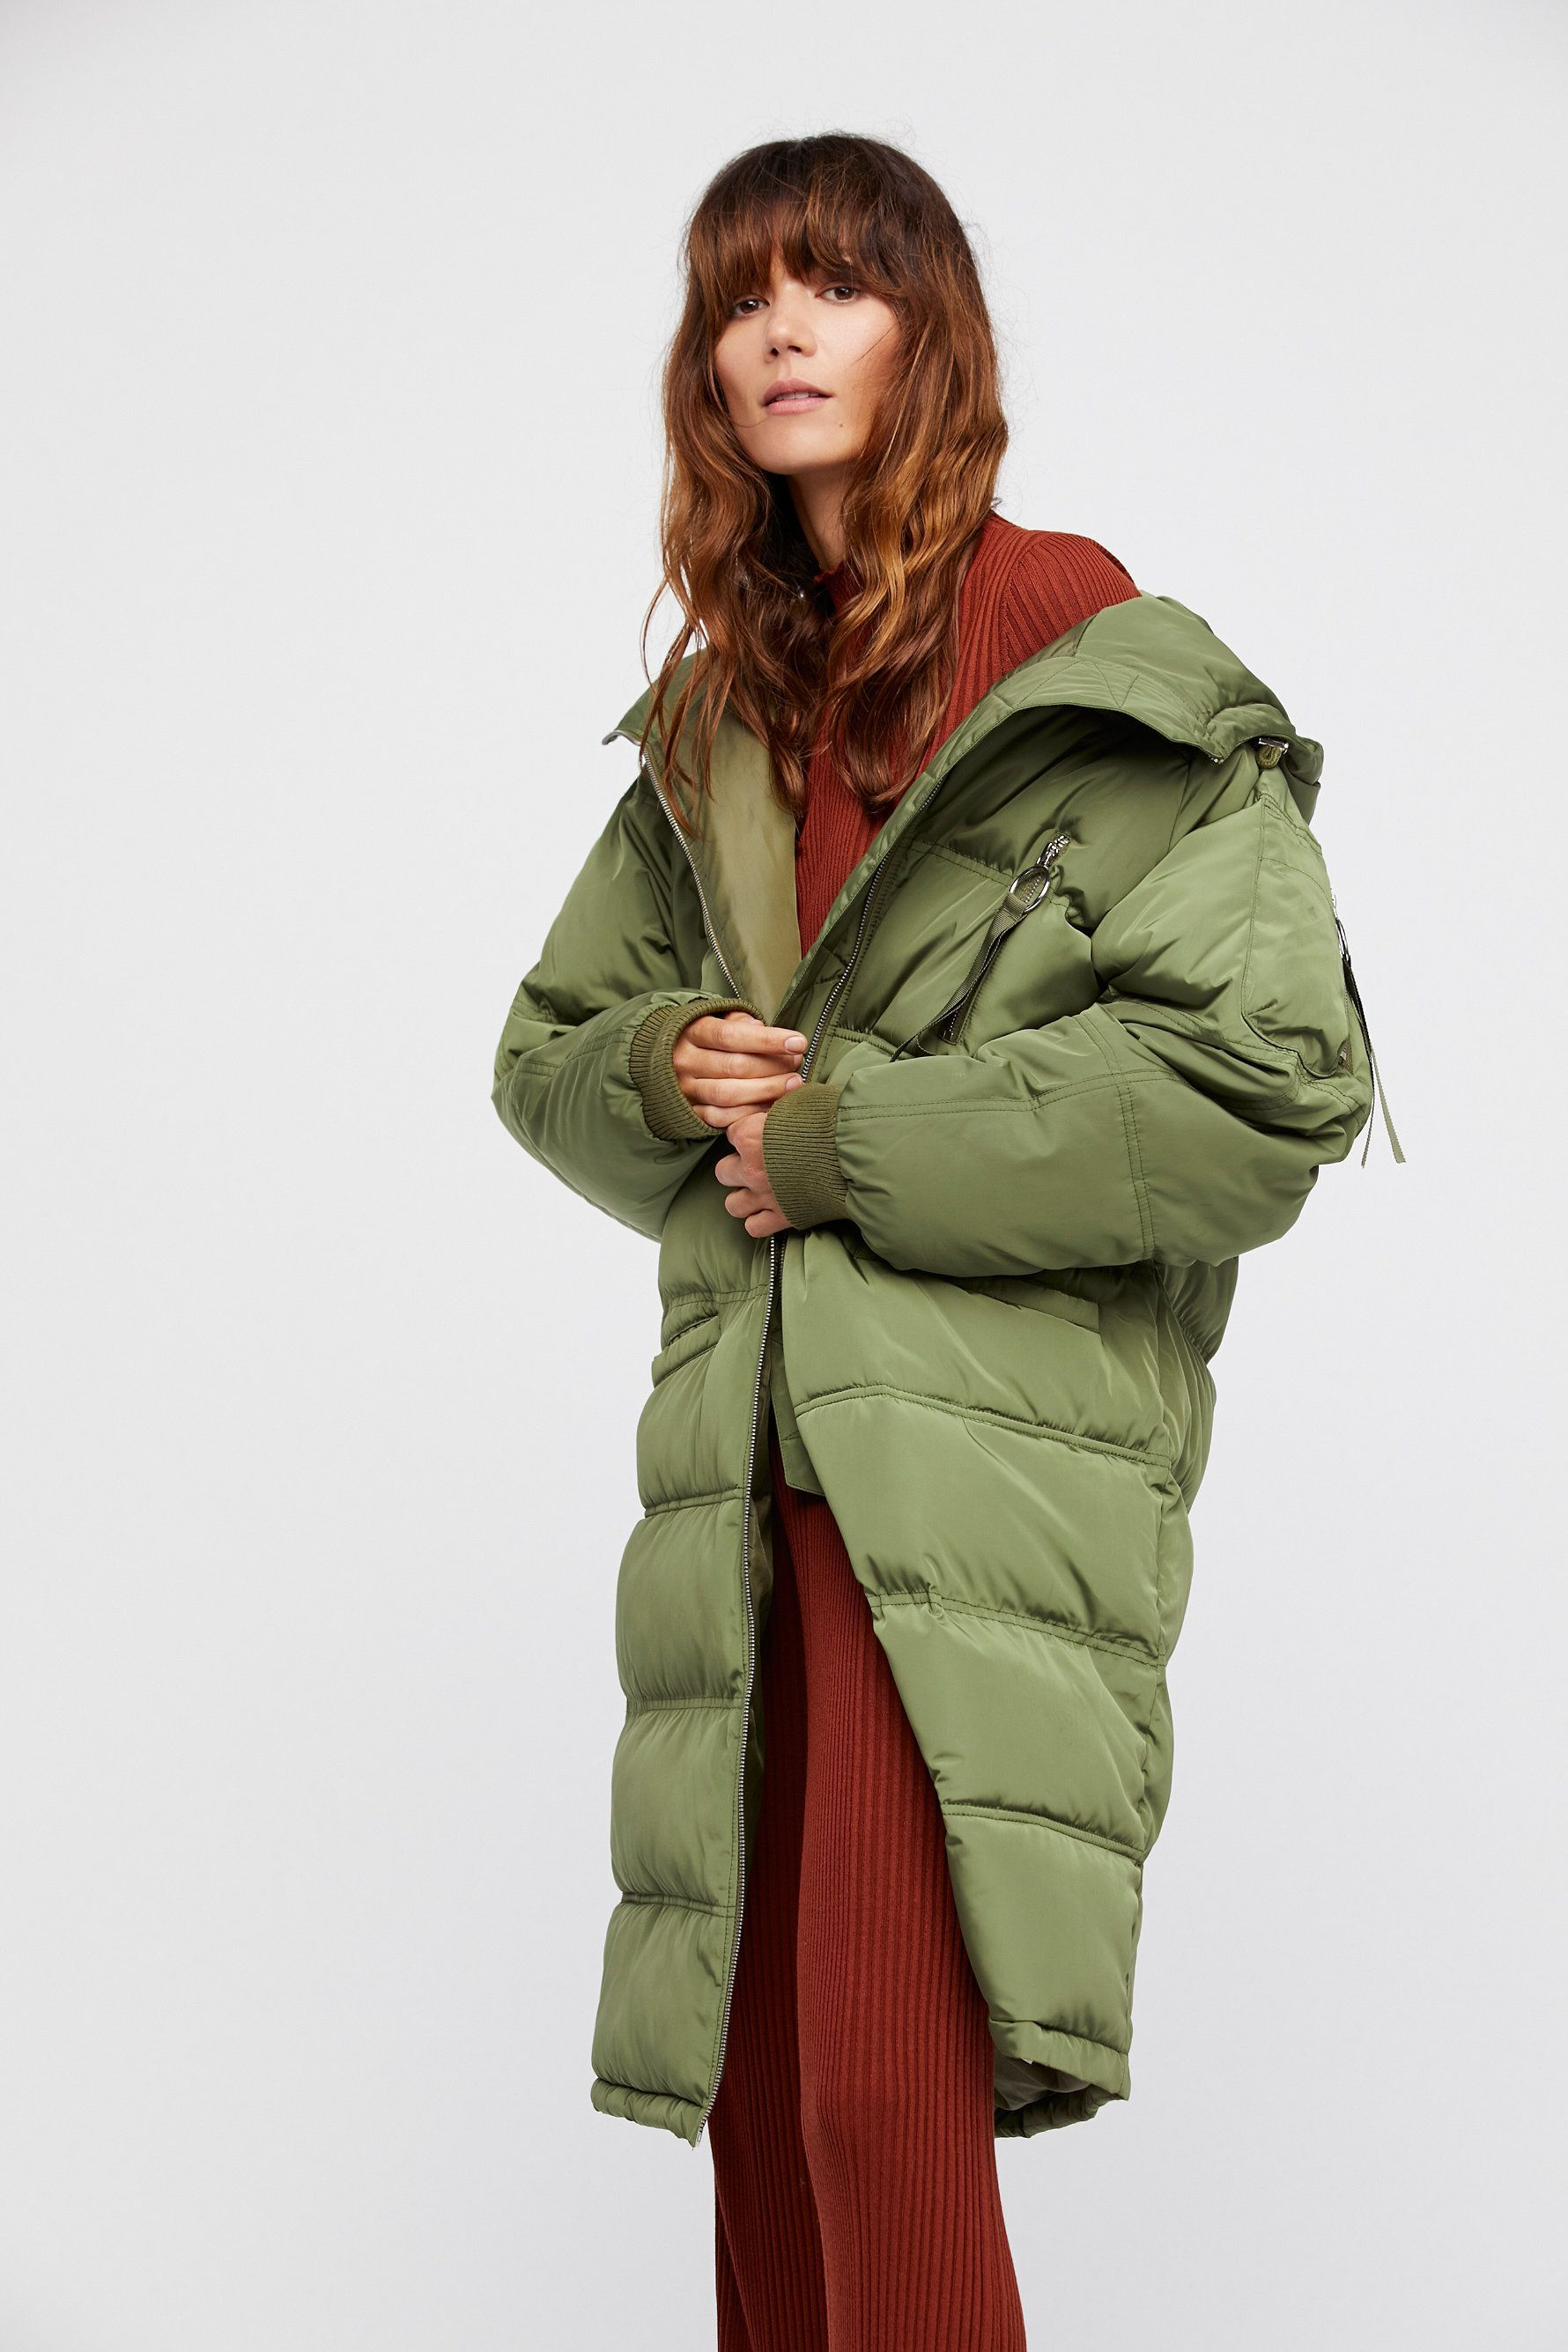 Winter Is Still Here 5 Coat Styles To Wrap Up In Coat Fashion Free People Clothing Boutique Coat [ 2670 x 1780 Pixel ]